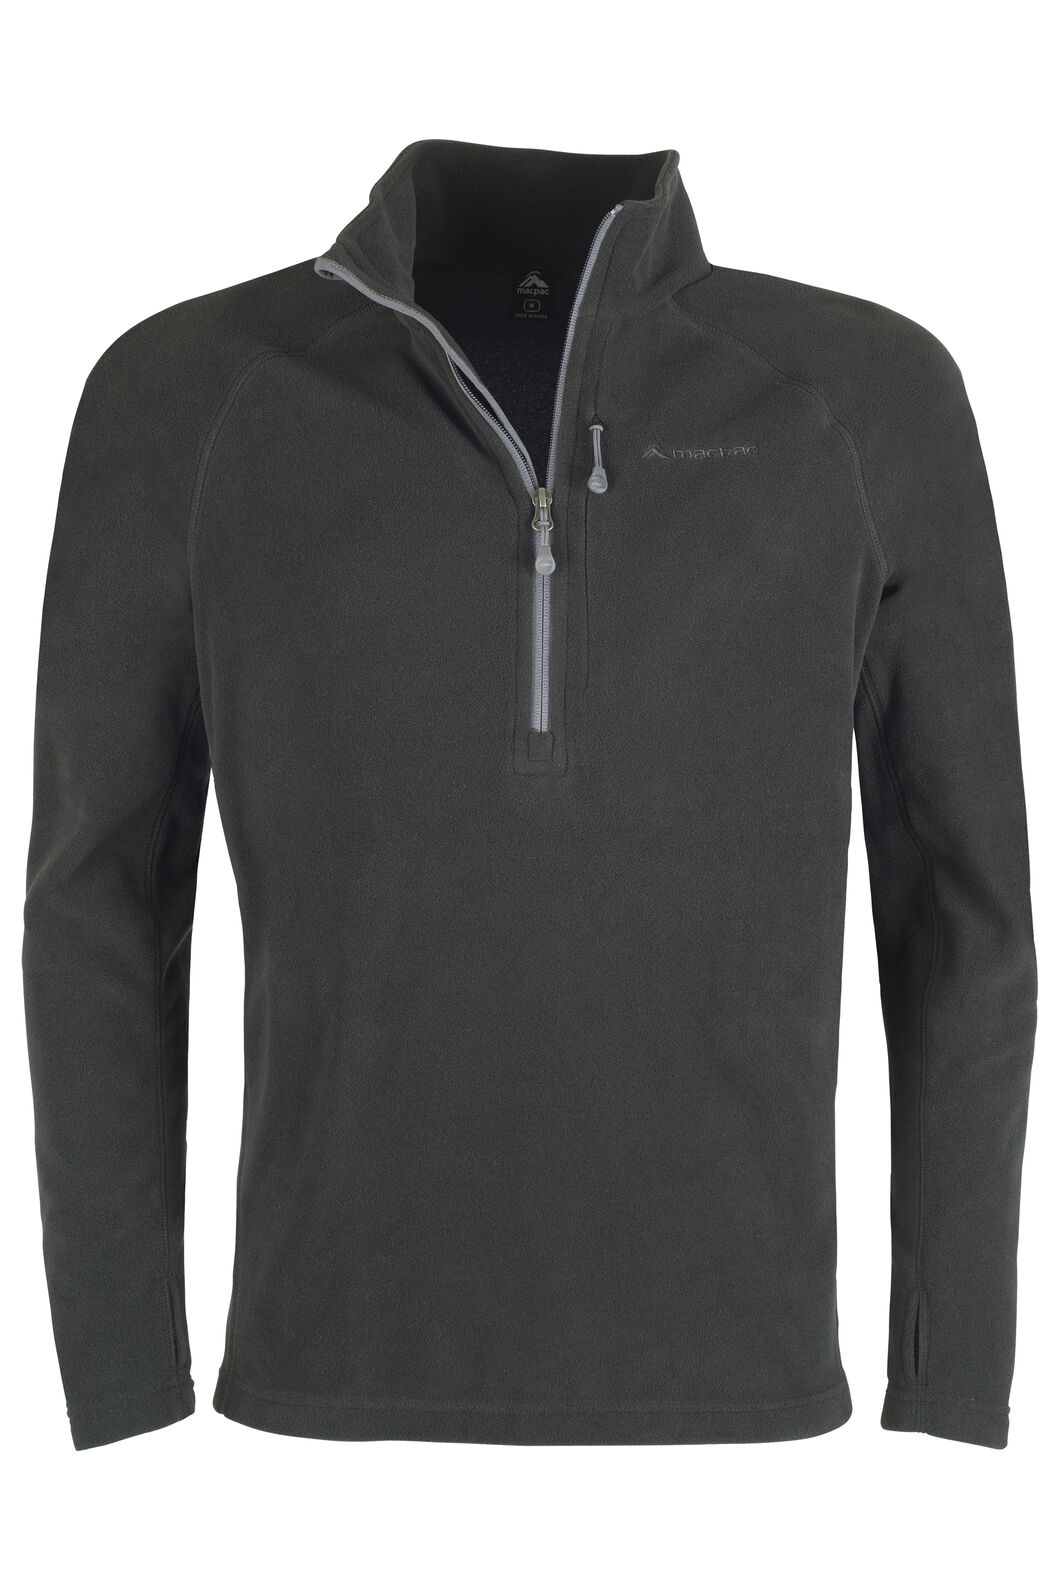 Macpac Tui Polartec® Micro Fleece® Pullover — Men's, Black, hi-res